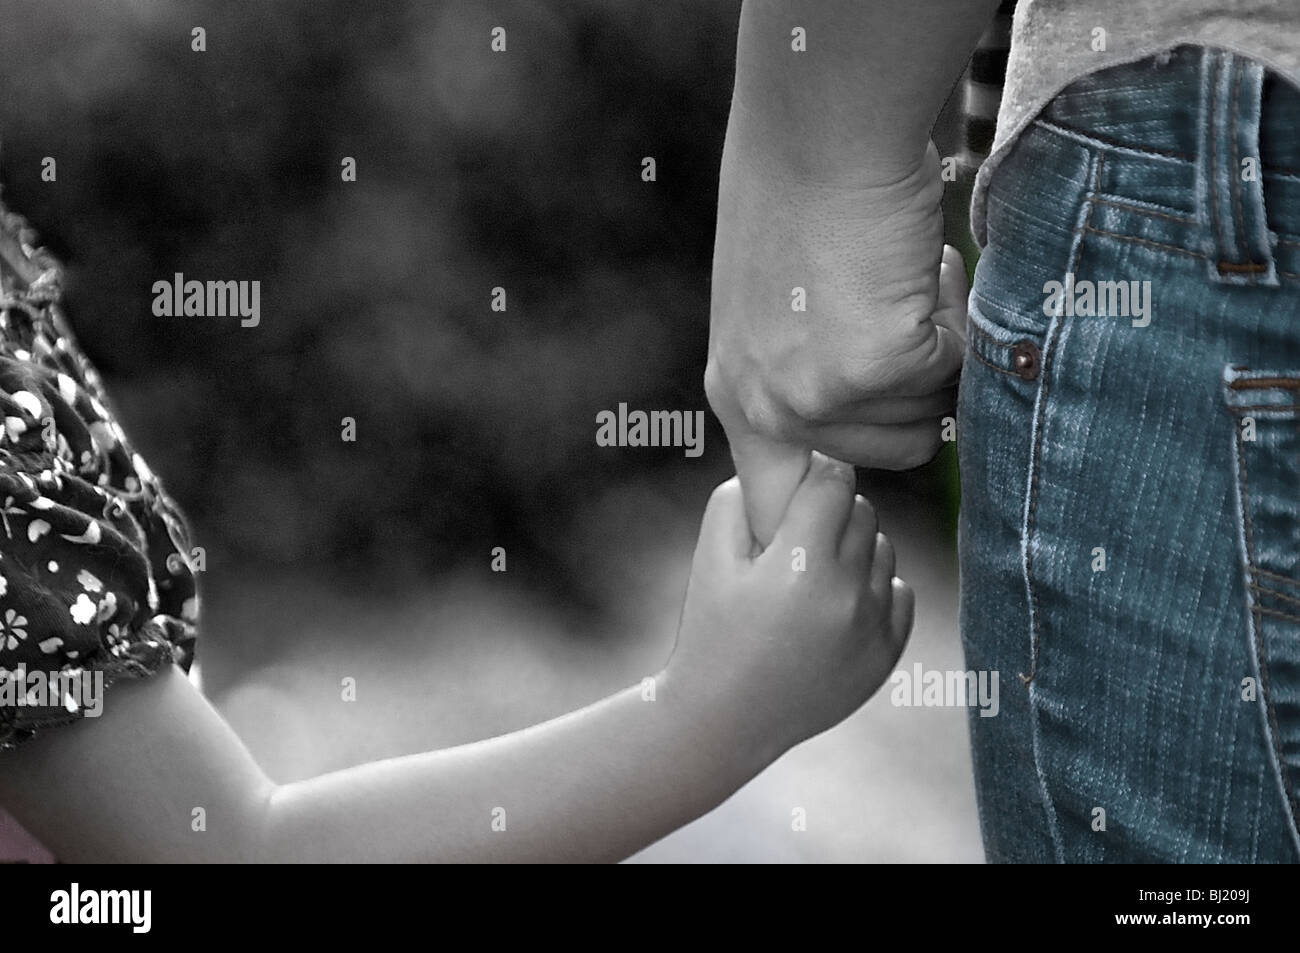 Best Friends - Stock Image